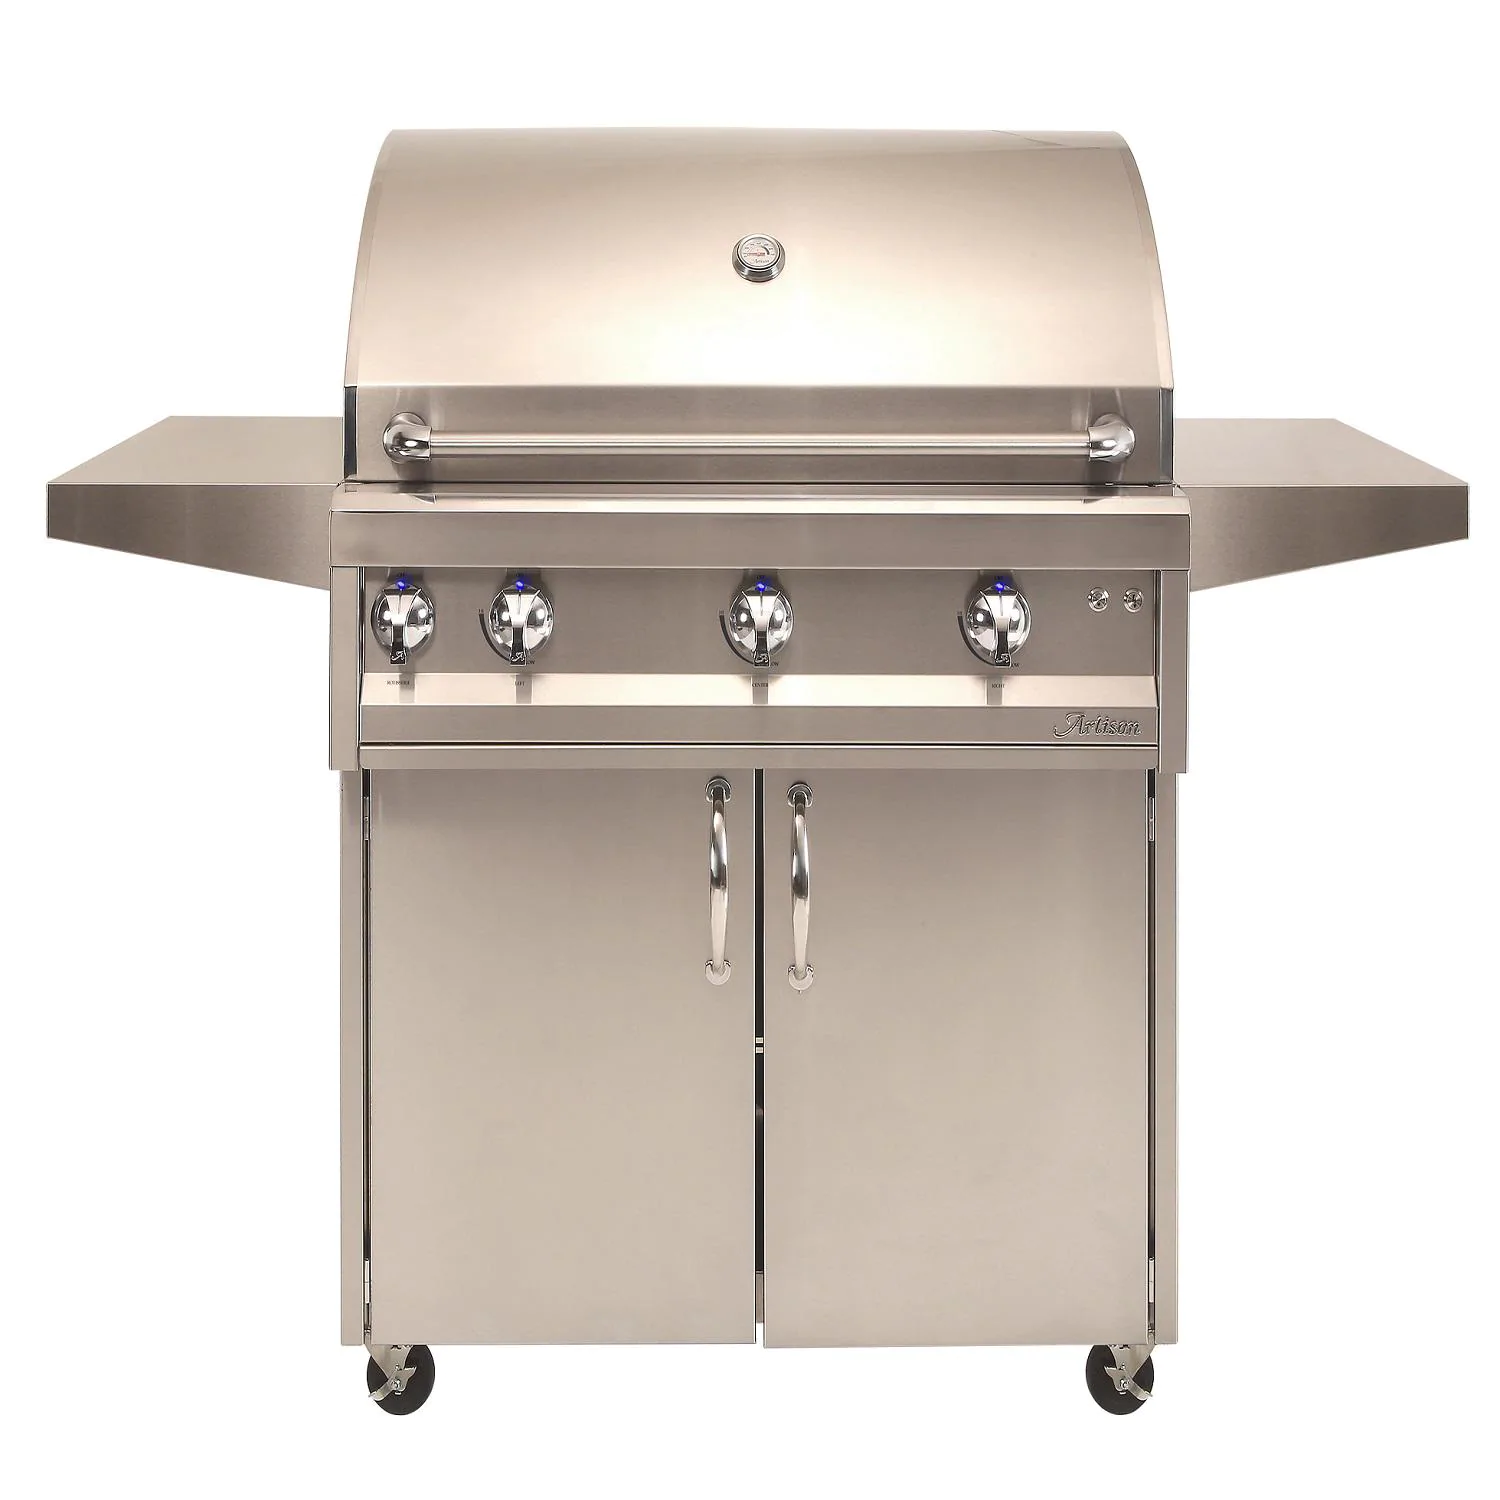 """Artisan Professional 36"""" 3-Burner Freestanding Natural Gas Grill With Rotisserie - ARTP-36C-NG"""